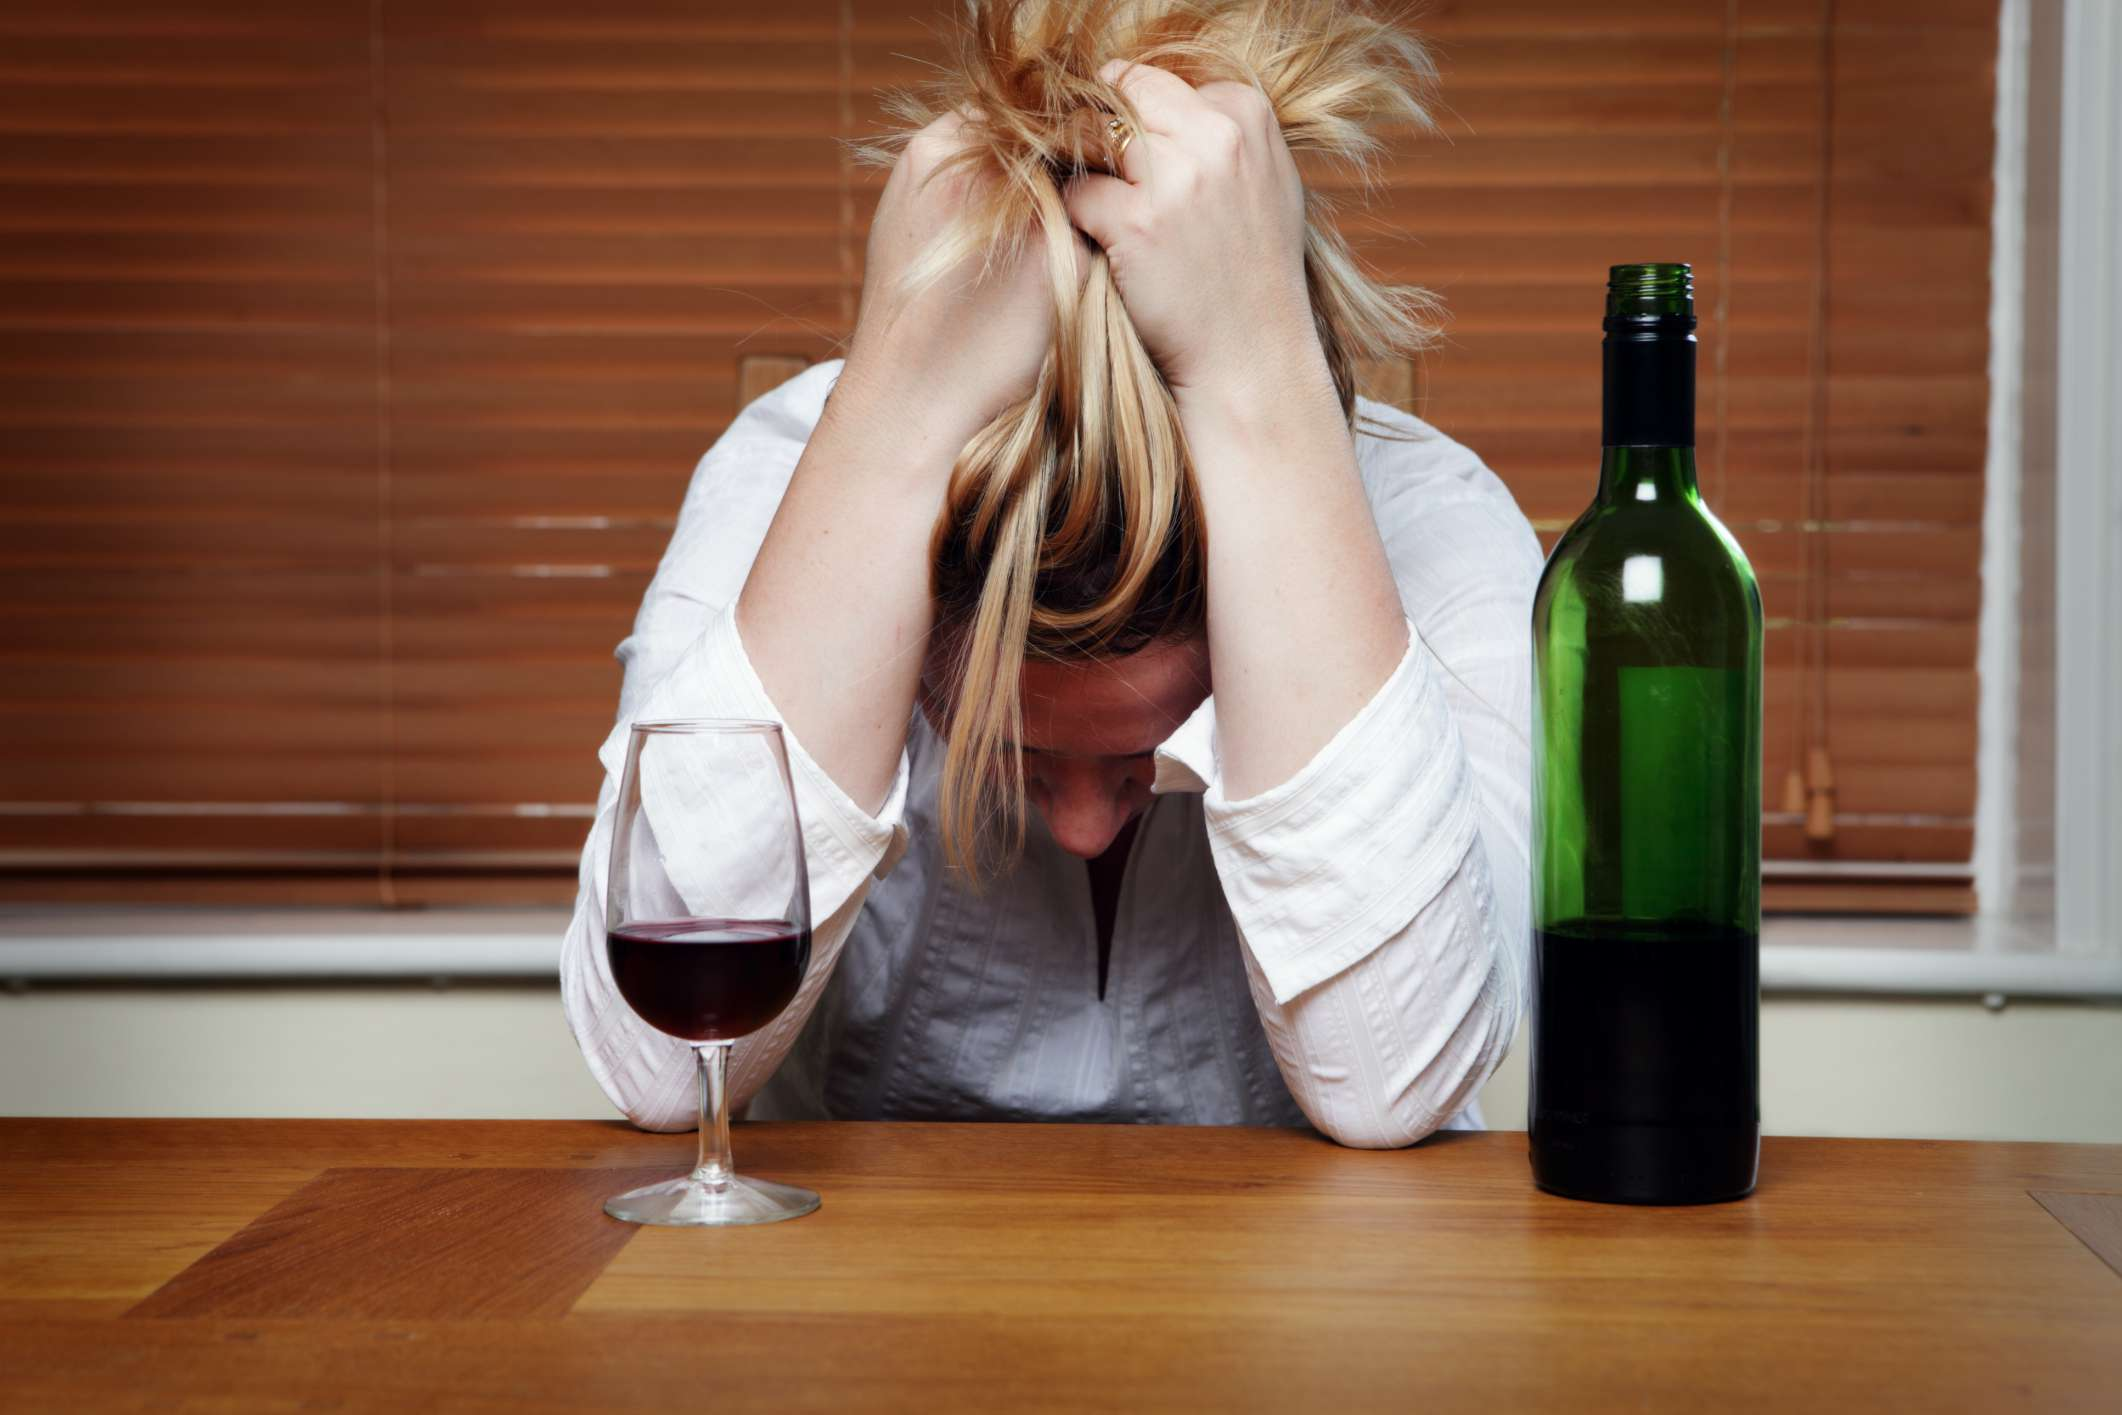 10 Ways Falling In Love With An Alcoholic Changed My Perspective